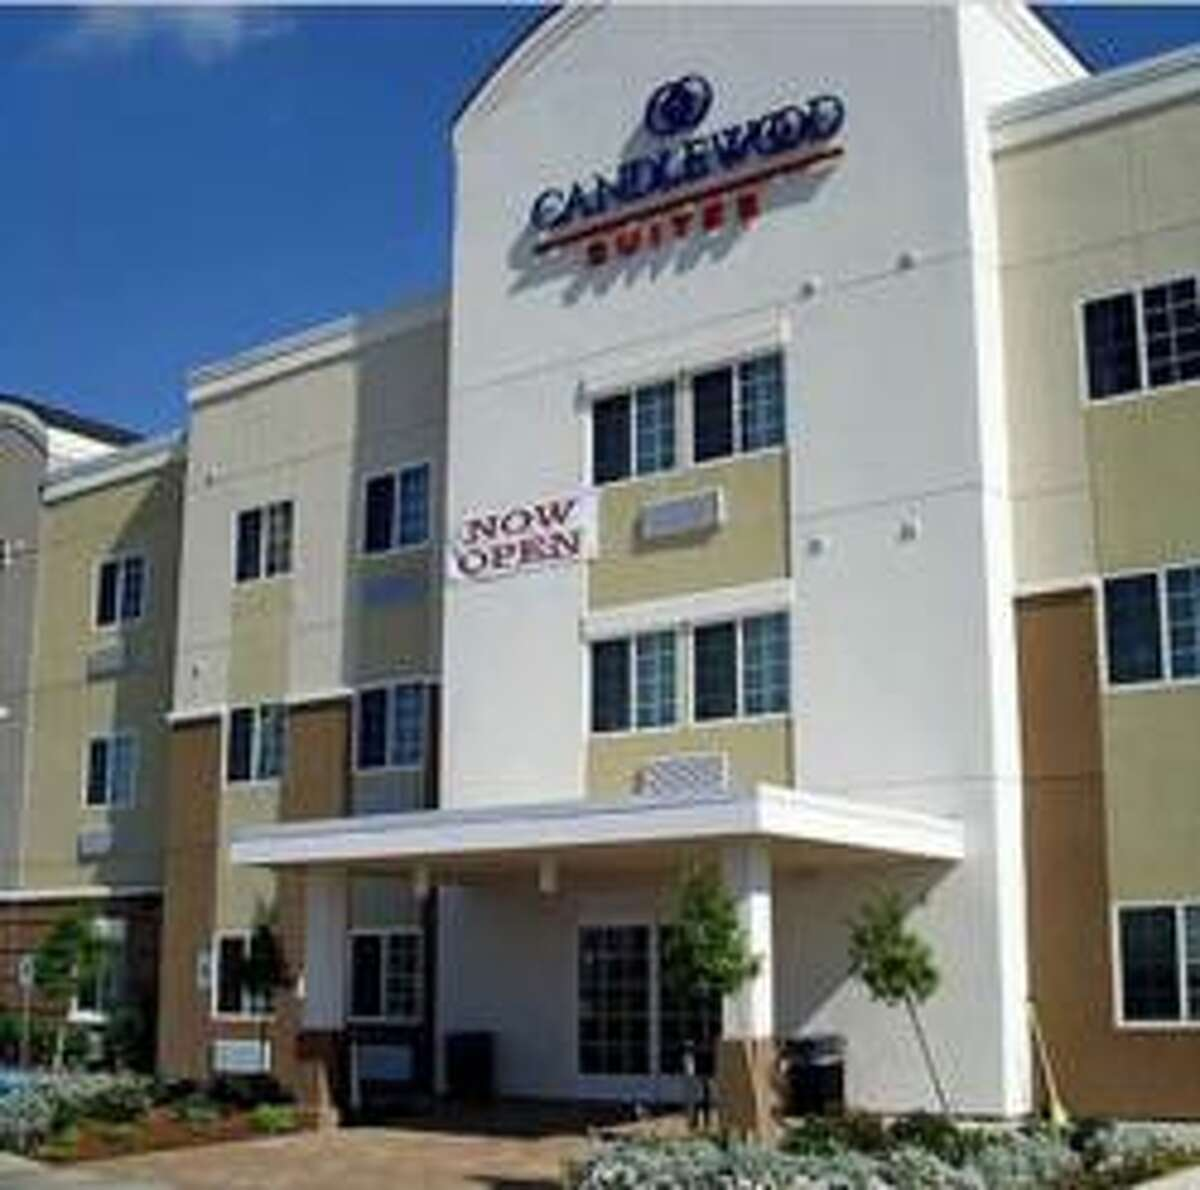 20. Candlewood Suites - 2800 Scott Road (Fort Sam Houston)Gross room rentals: $700,000